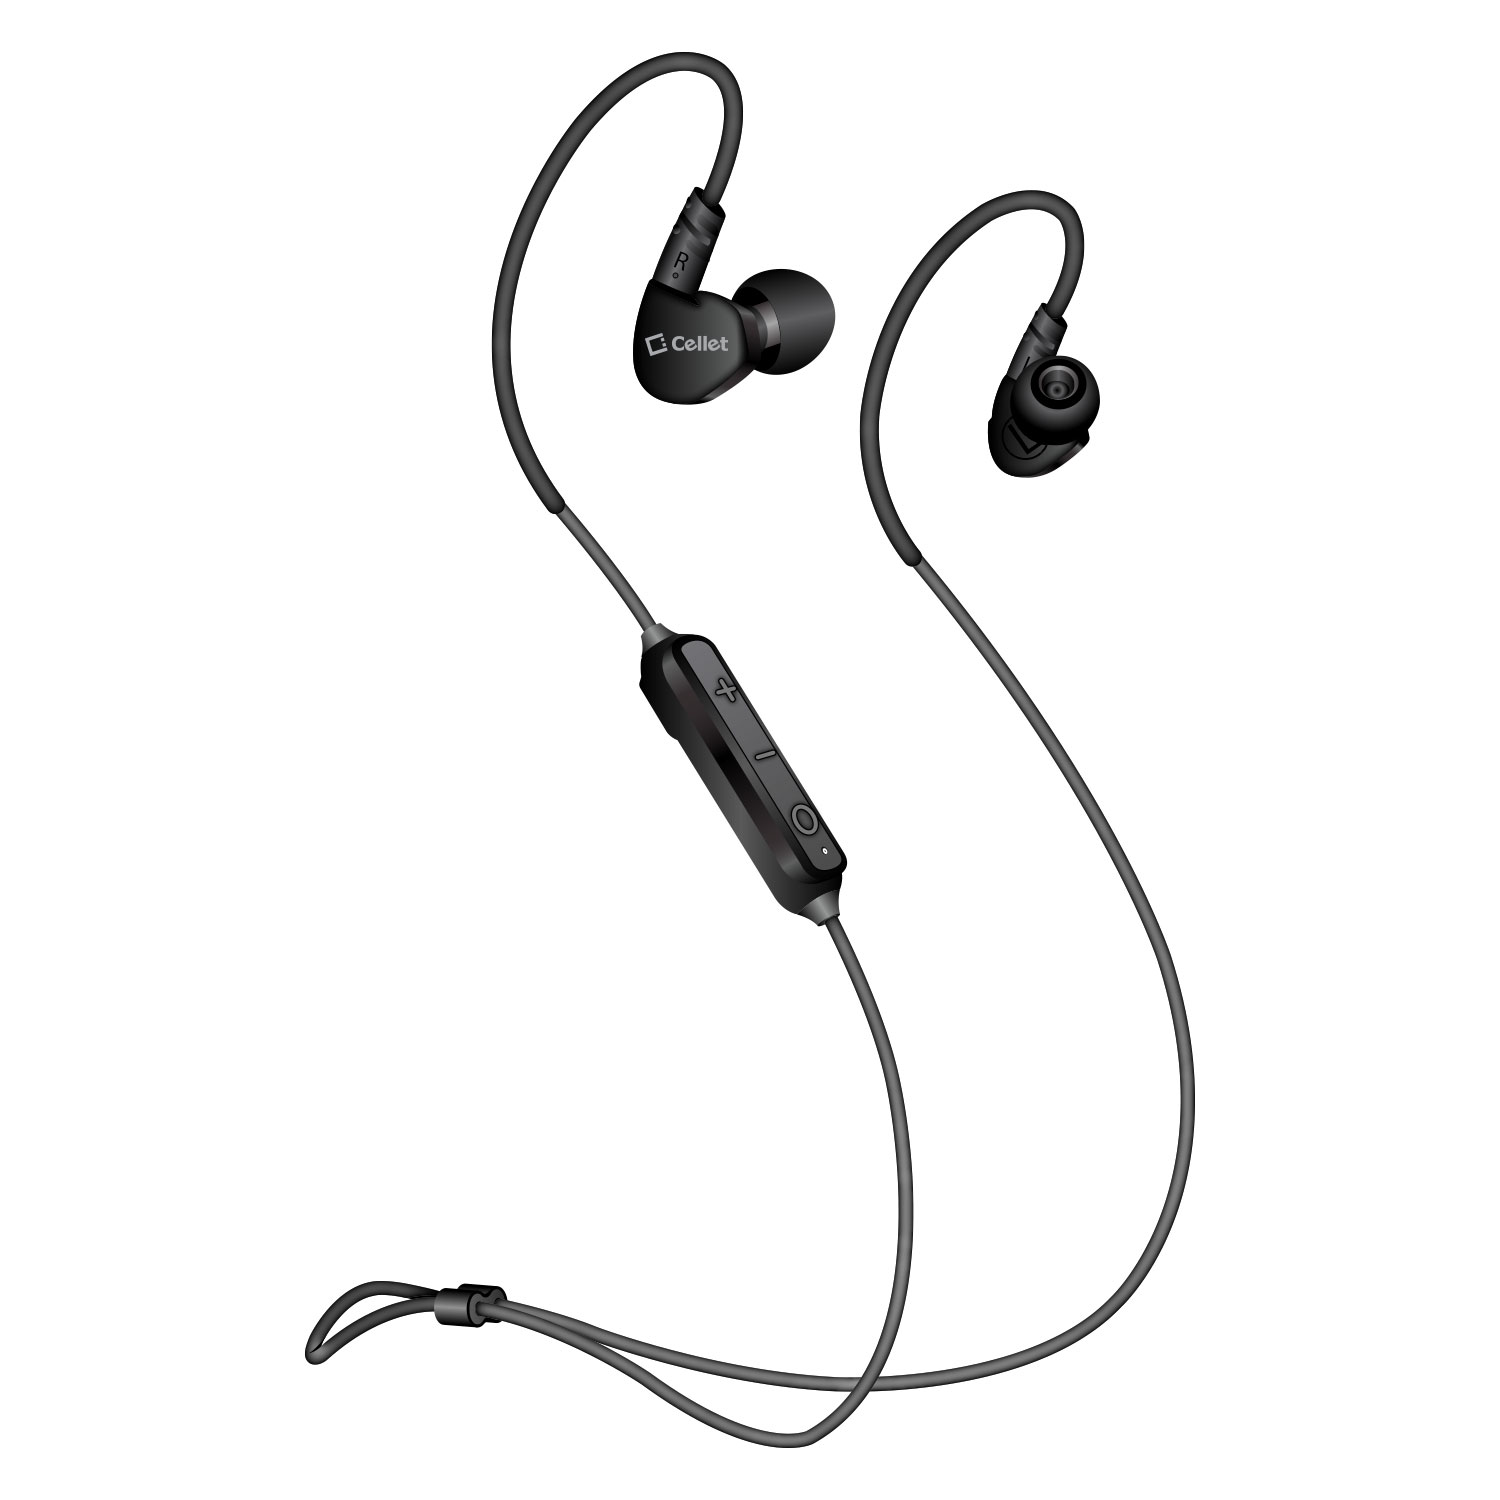 Alcatel Avalon V Bluetooth V5.0 Stereo Earphones Sport Headset Black